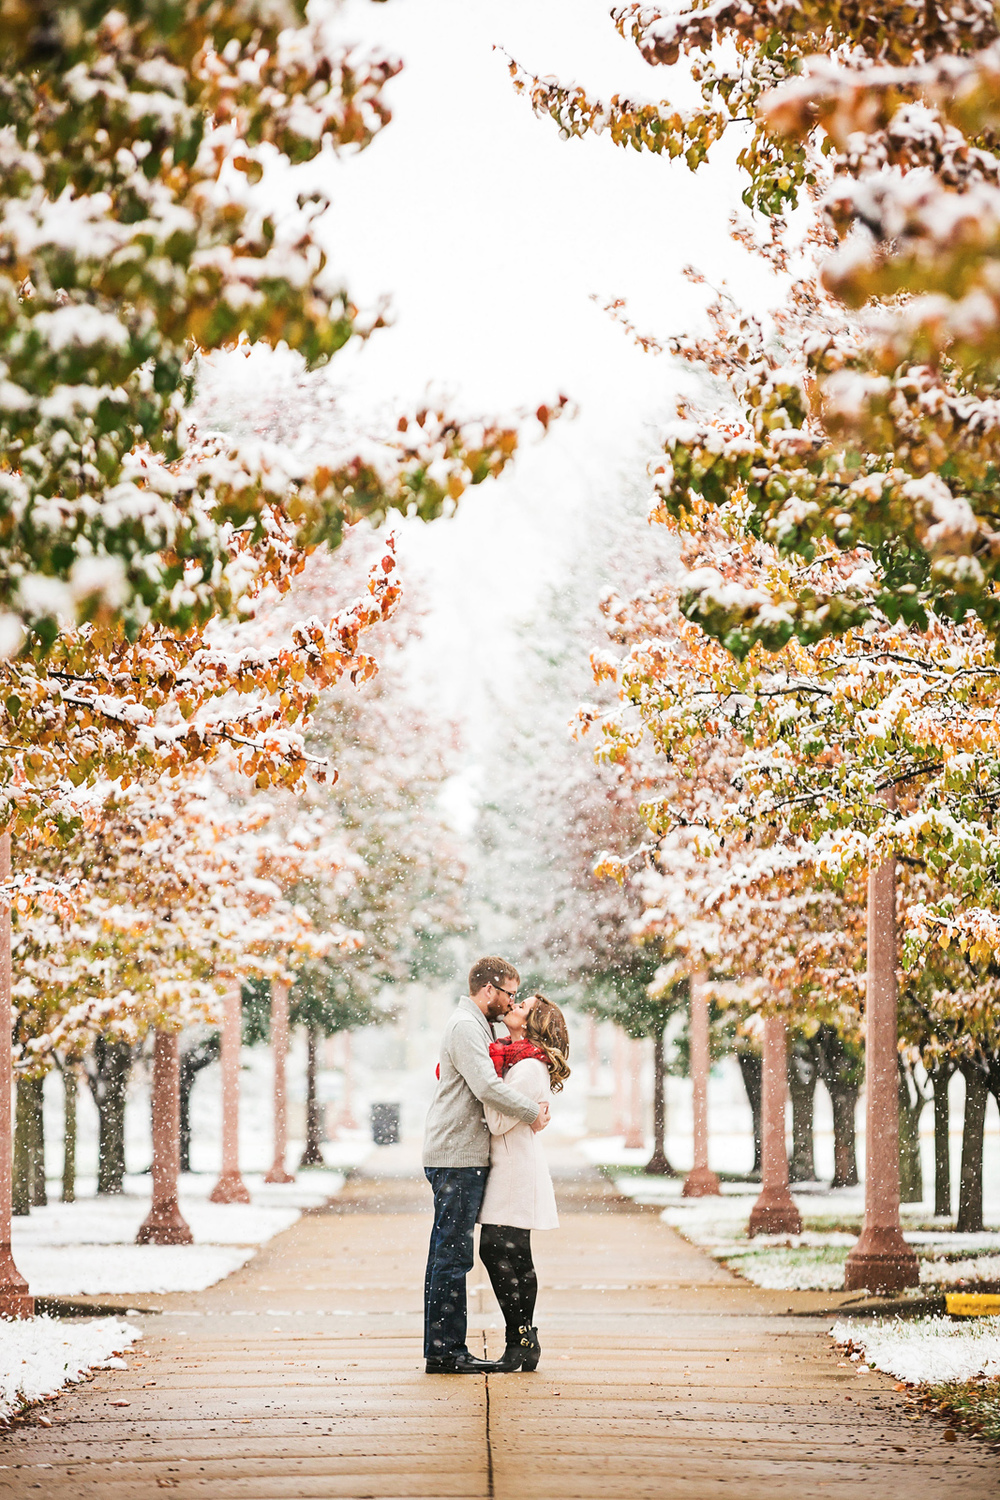 Oldani-Photography-St-Louis-Forest-Park-Engagement-Photos-Snow_20141116_15433222.jpg